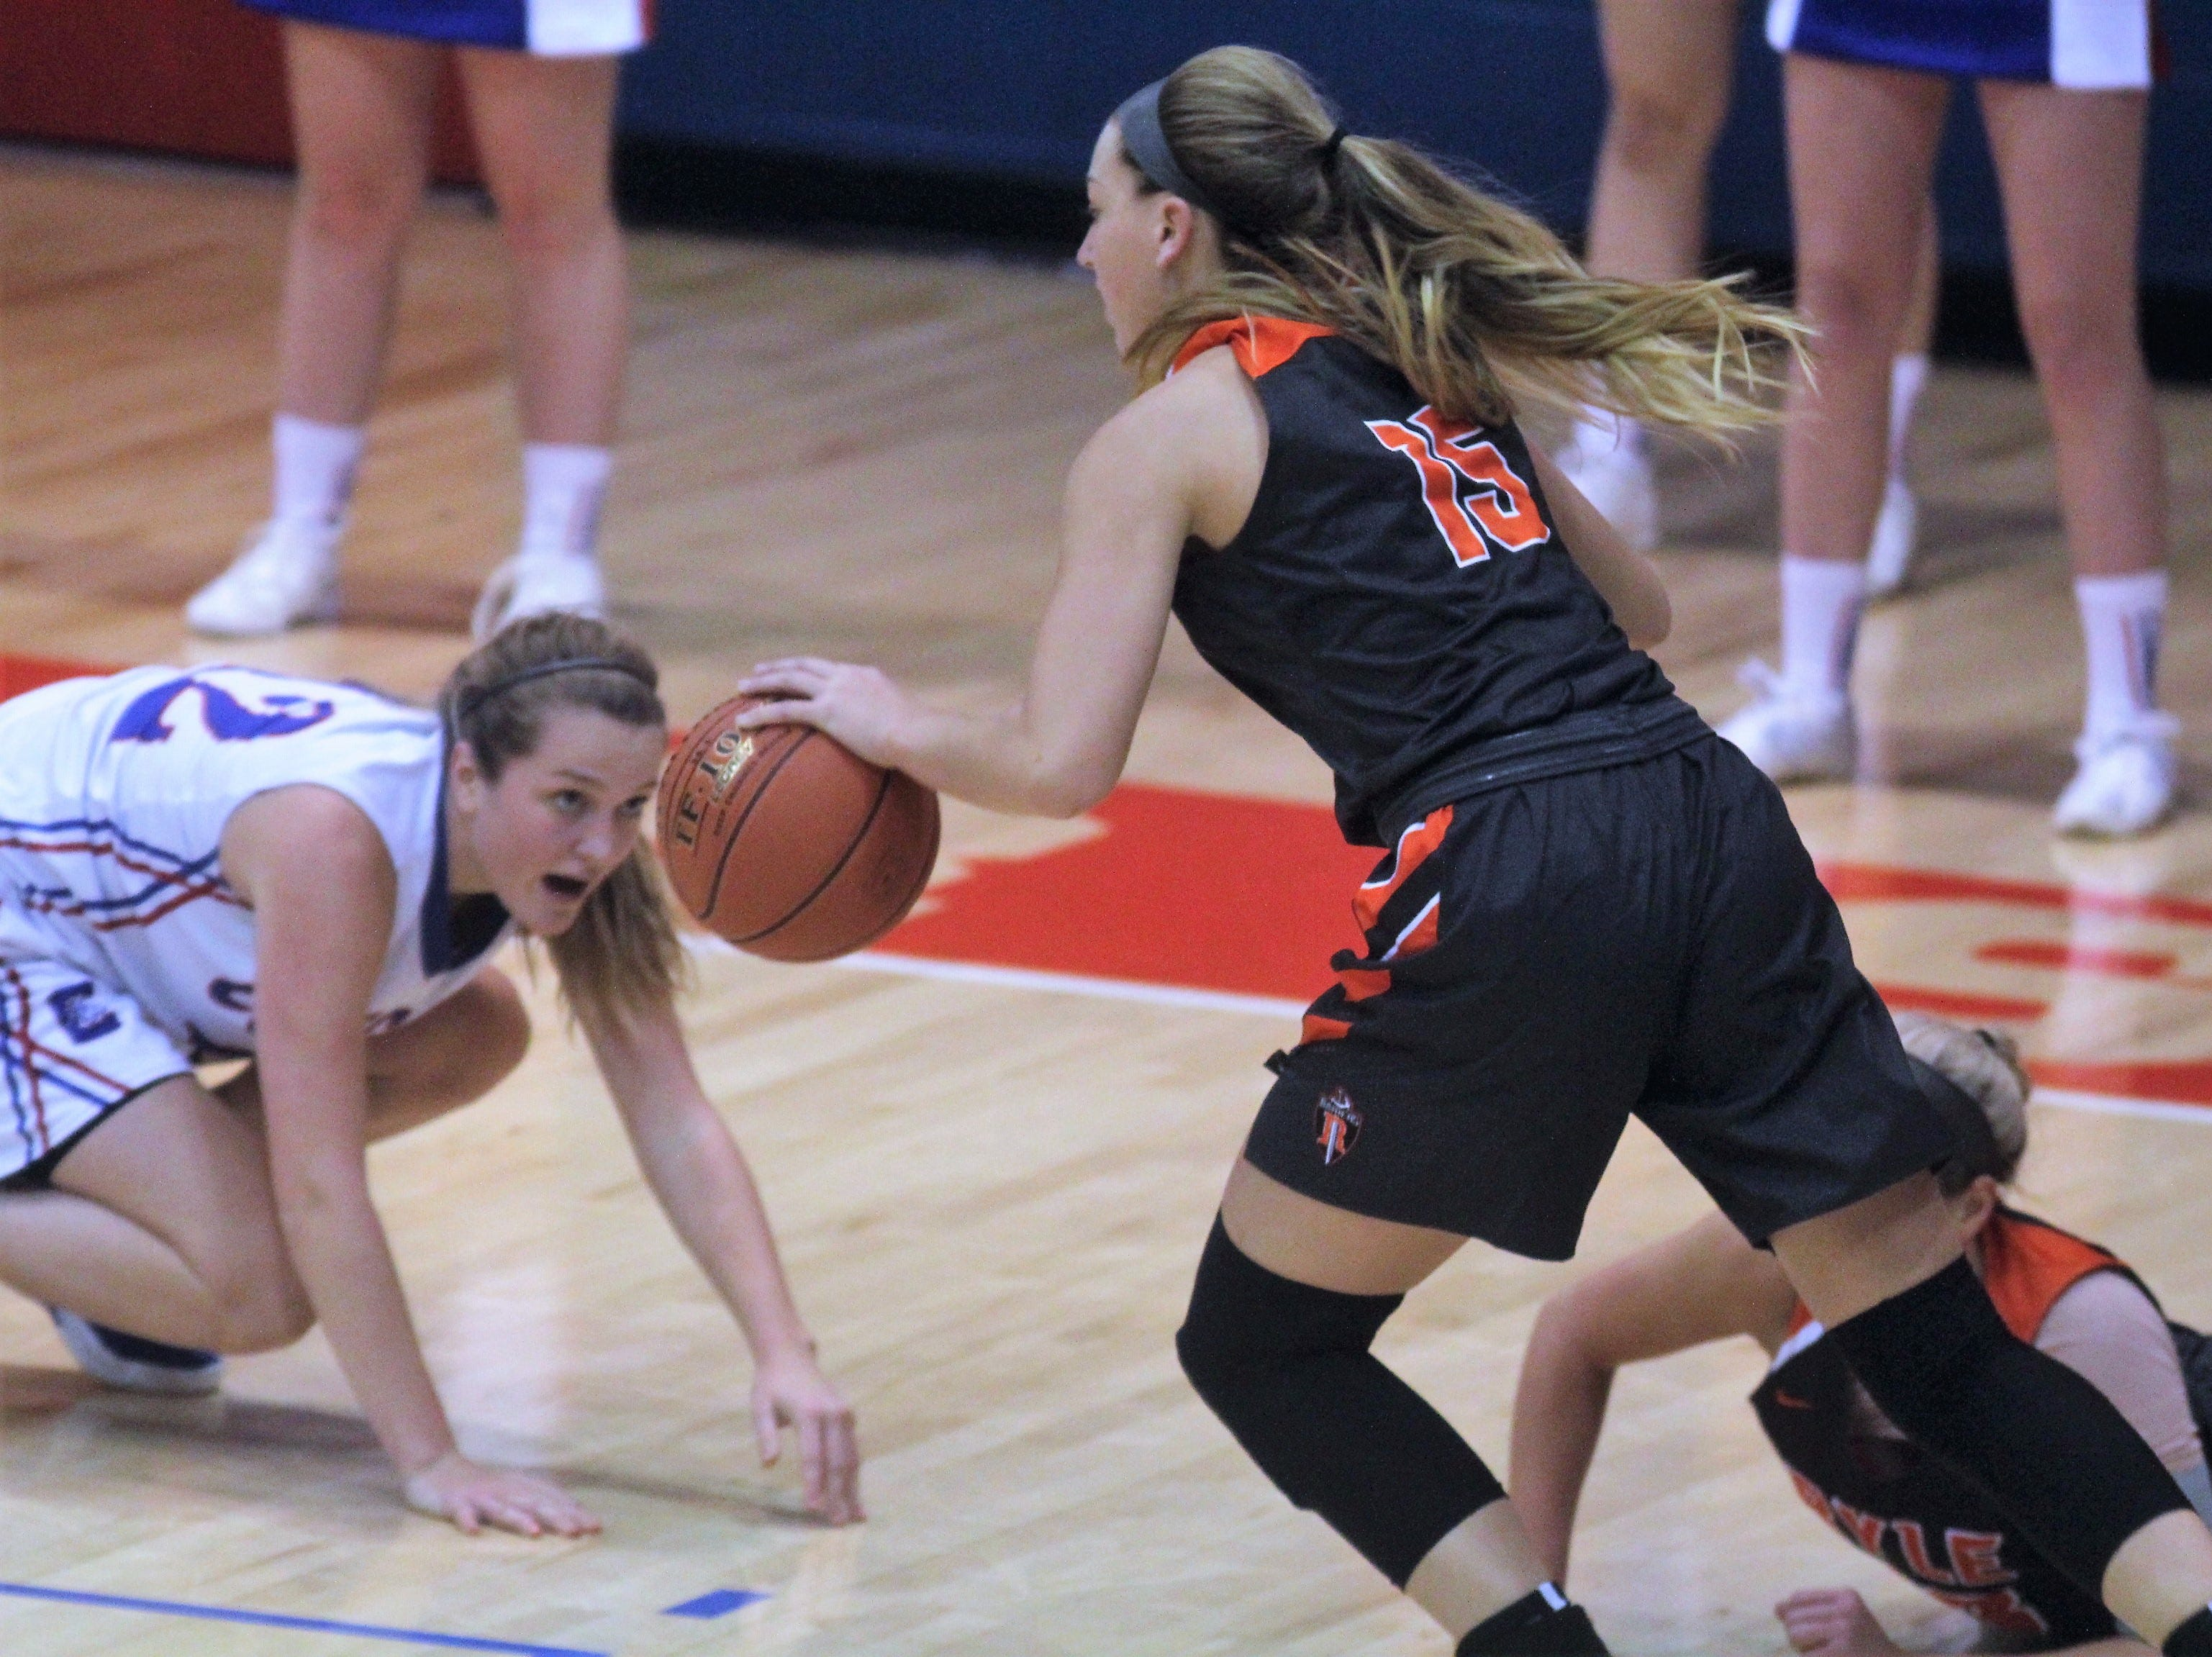 Ryle senior Lauren Schwartz grabs the loose ball as Conner senior Courtney Hurst gets up to defend as Ryle defeated Conner 60-49 in a girls basketball district game Dec. 7, 2018 at Conner High School, Hebron KY.